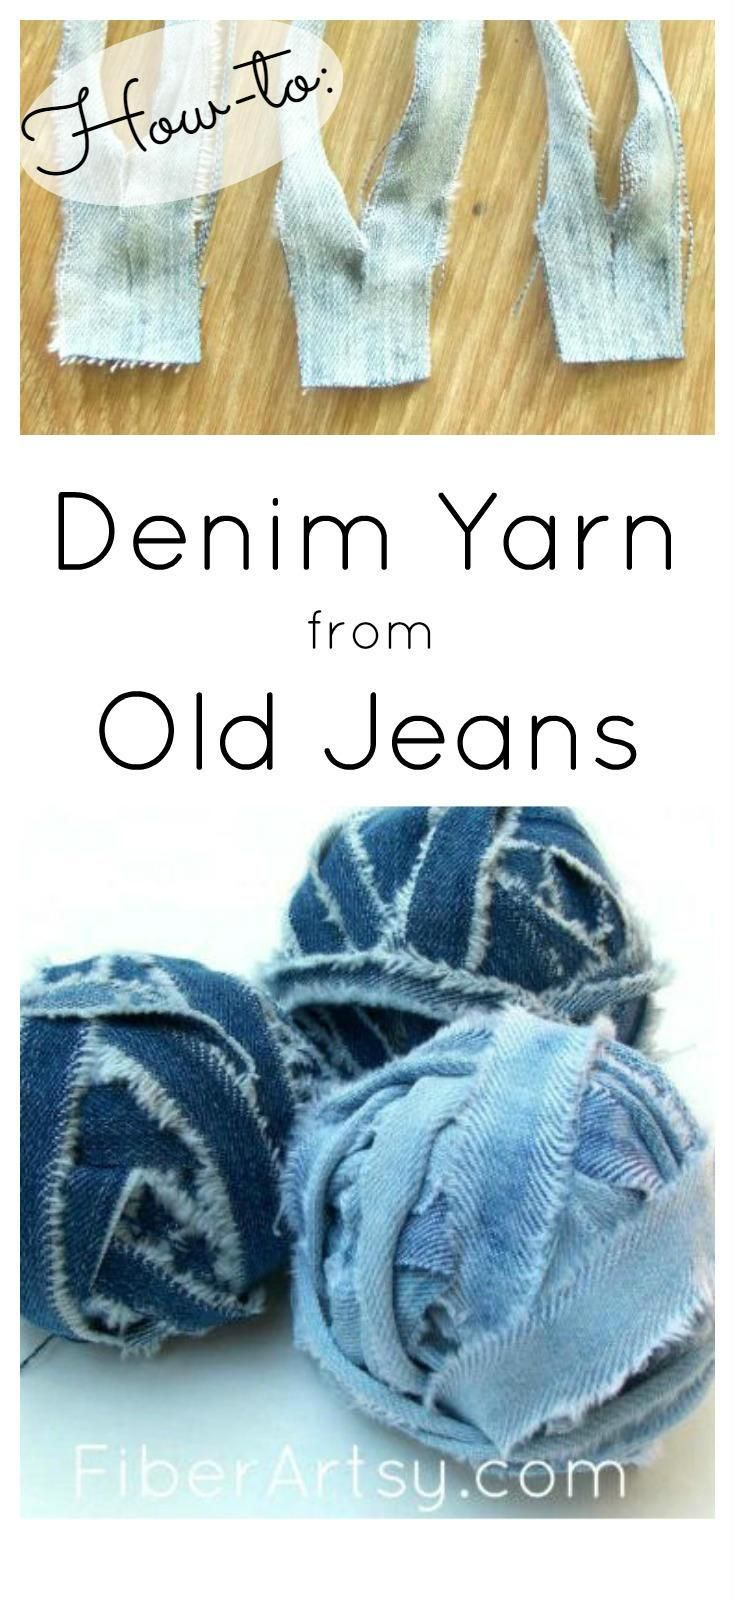 How to Make Denim Yarn from Old Jeans | Great for lots of knit and crochet patterns such as rugs or purses. Free tutorial from FiberArtsy.com